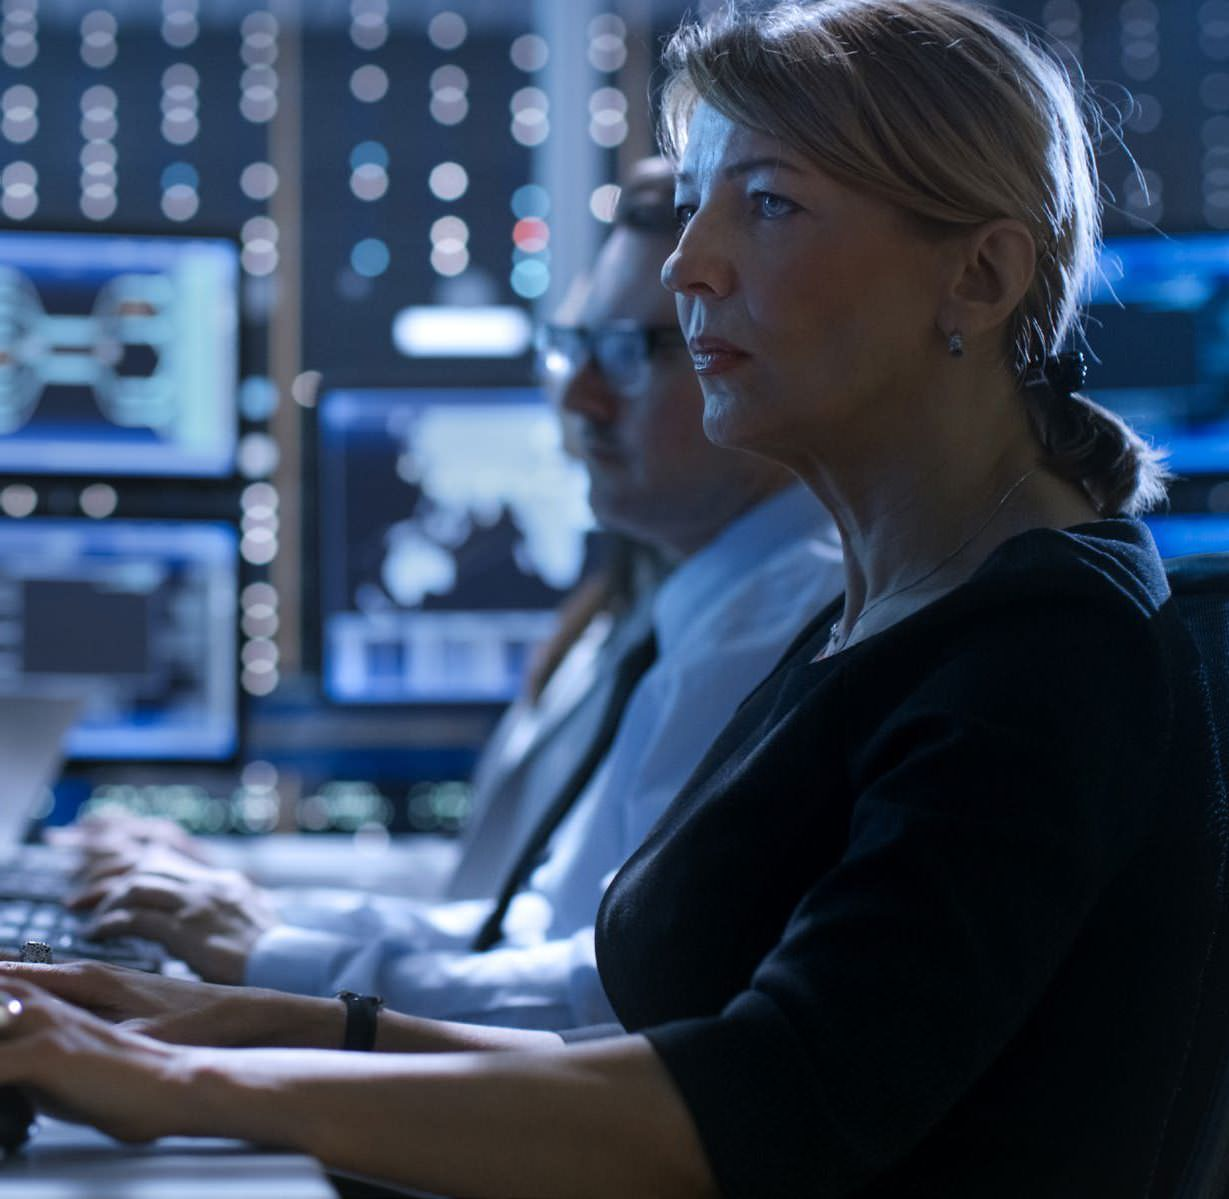 Build A Strong Foundation For Your Cybersecurity Career